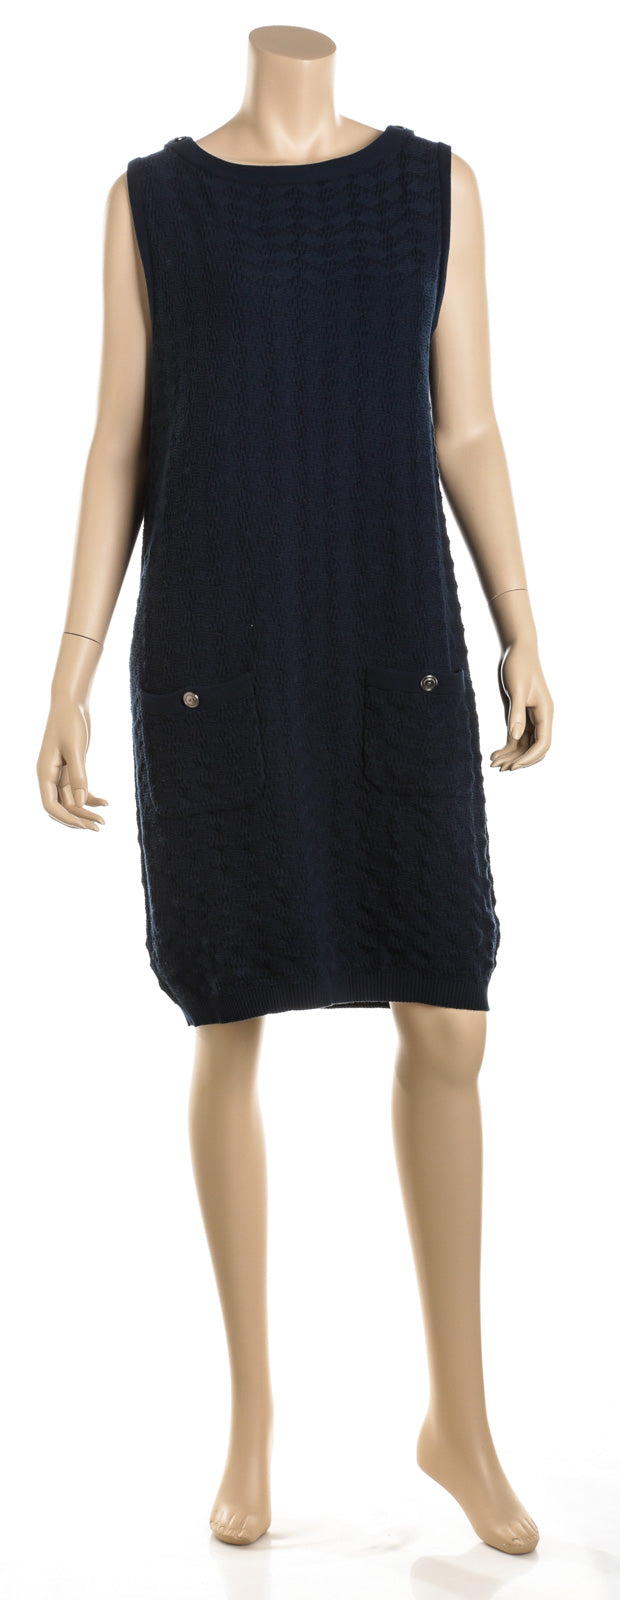 Chanel Blue Cotton Knit Sleeveless Shift Dress (Size 42)